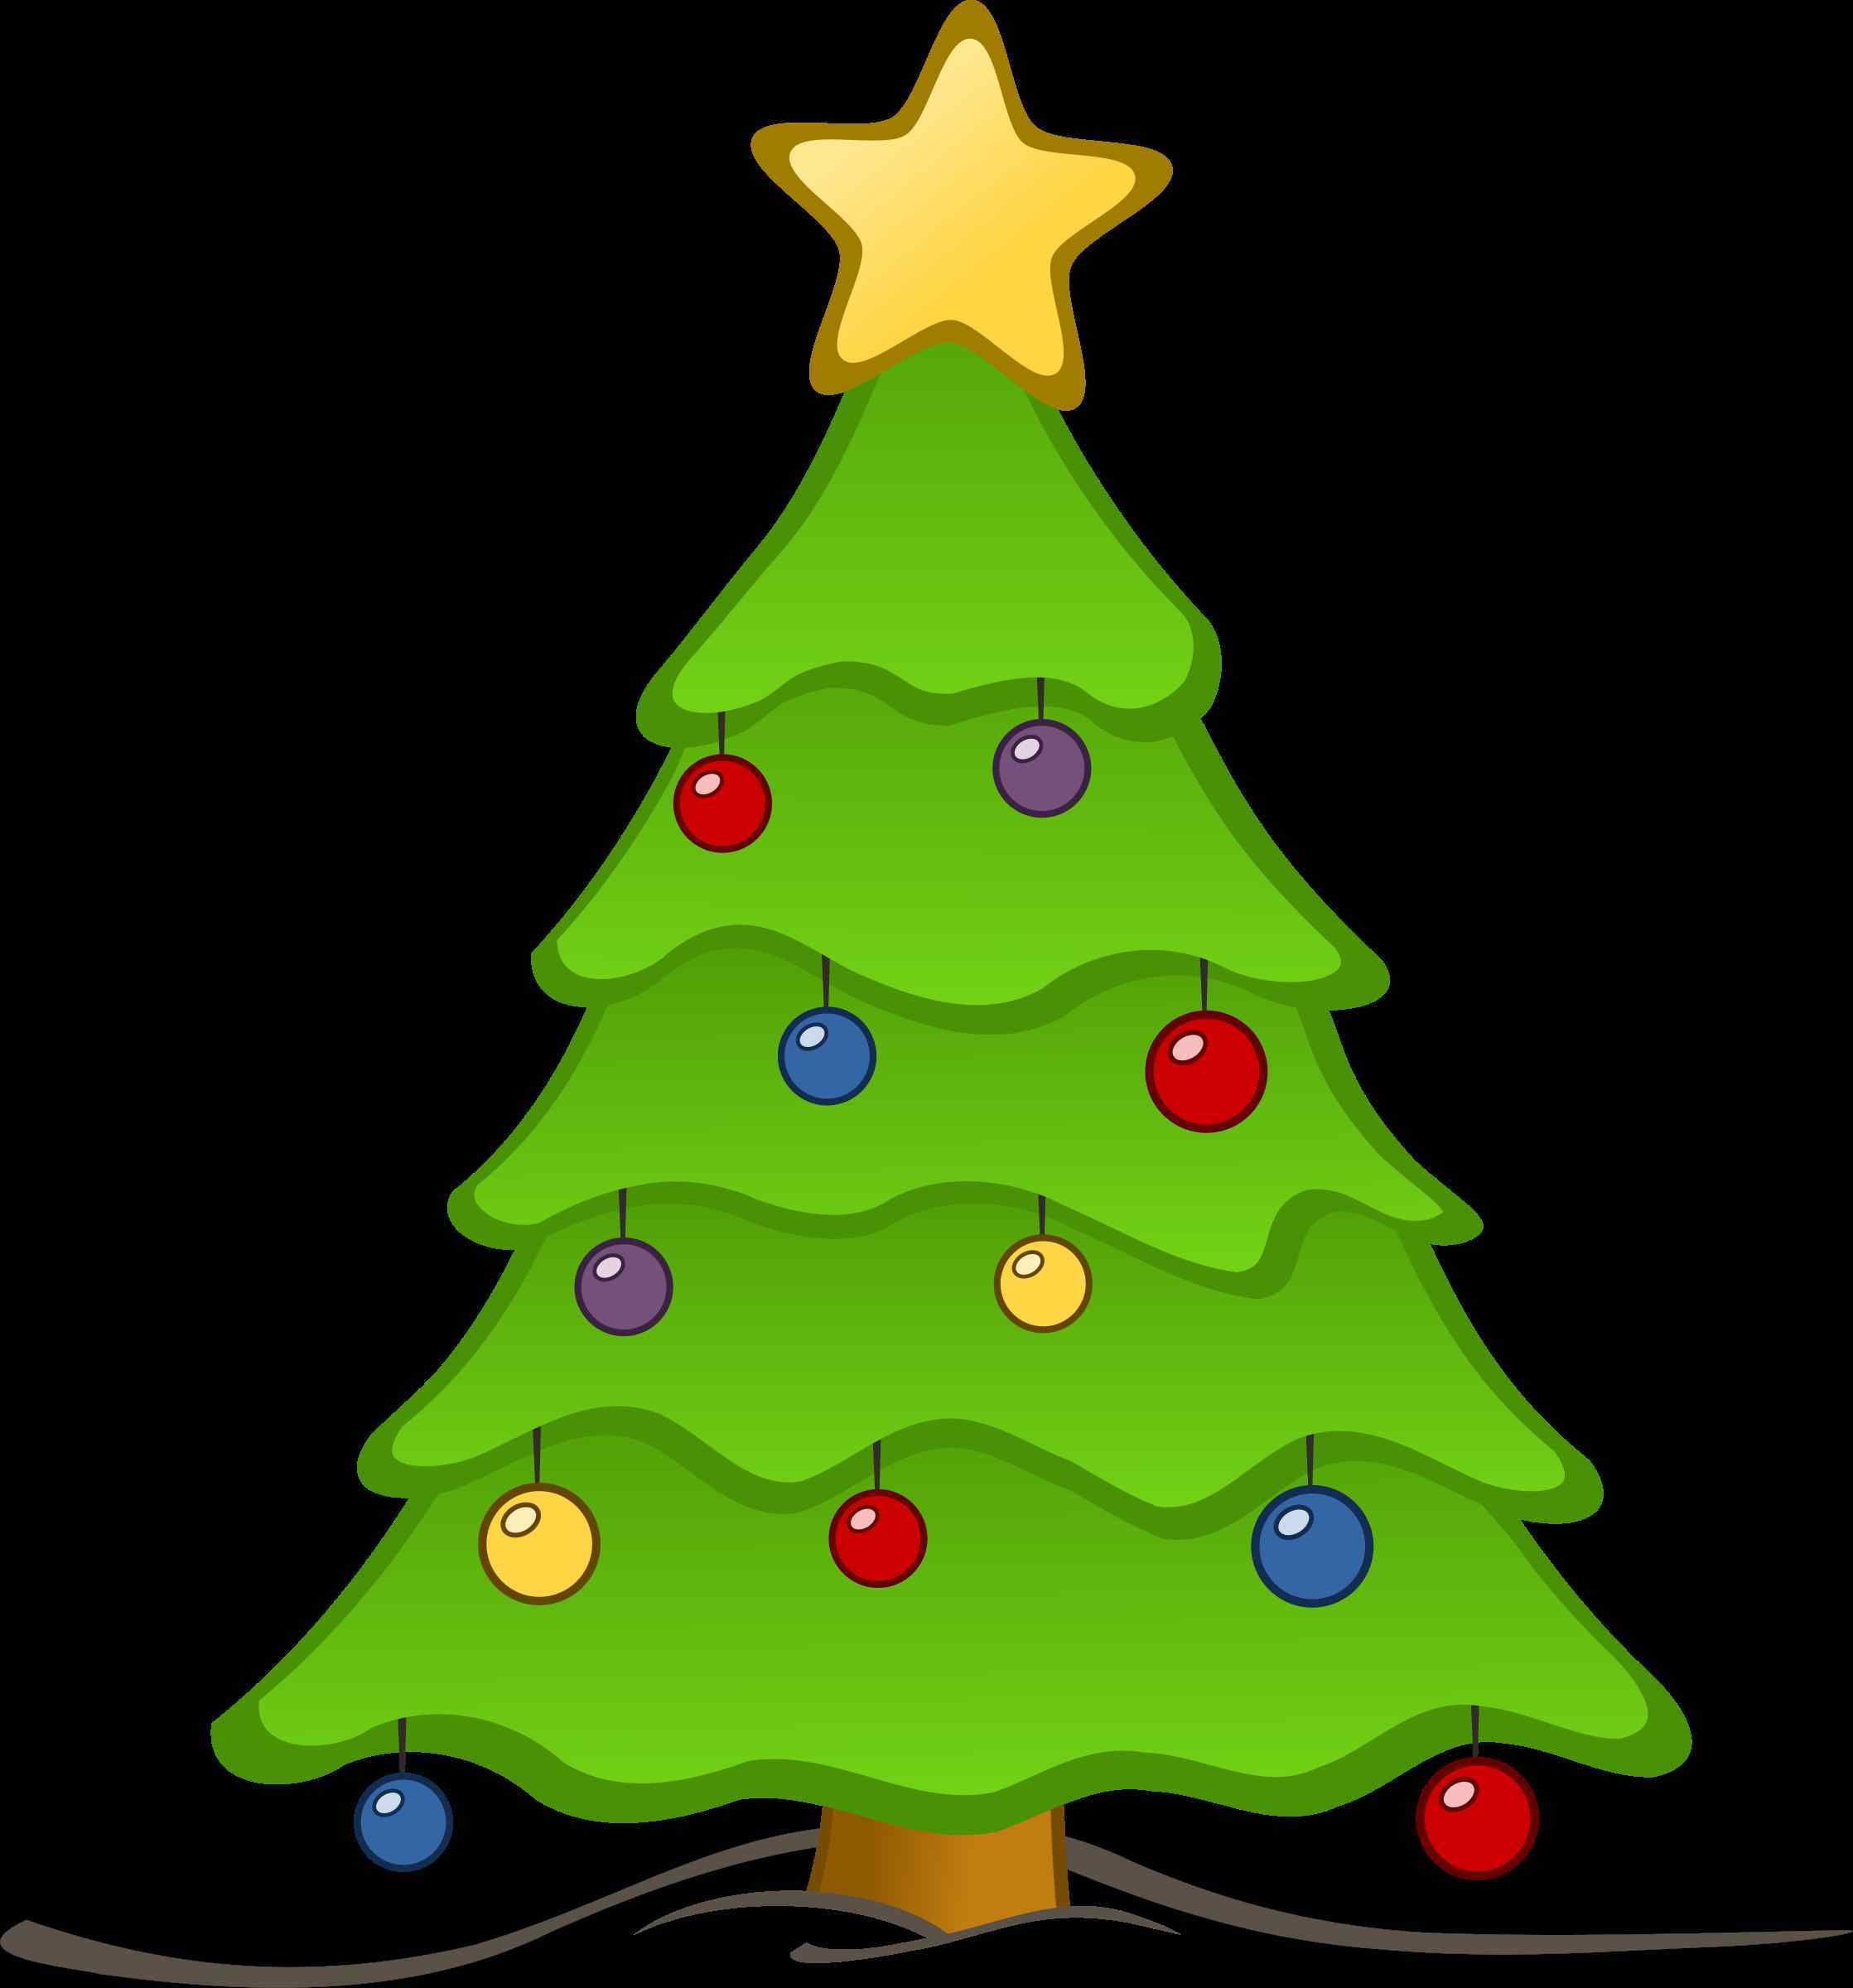 5 Lovely Christmas Tree Clipart Transparent Background Prekhome Christmas Tree Clipart Christmas Tree Images Cute Christmas Tree